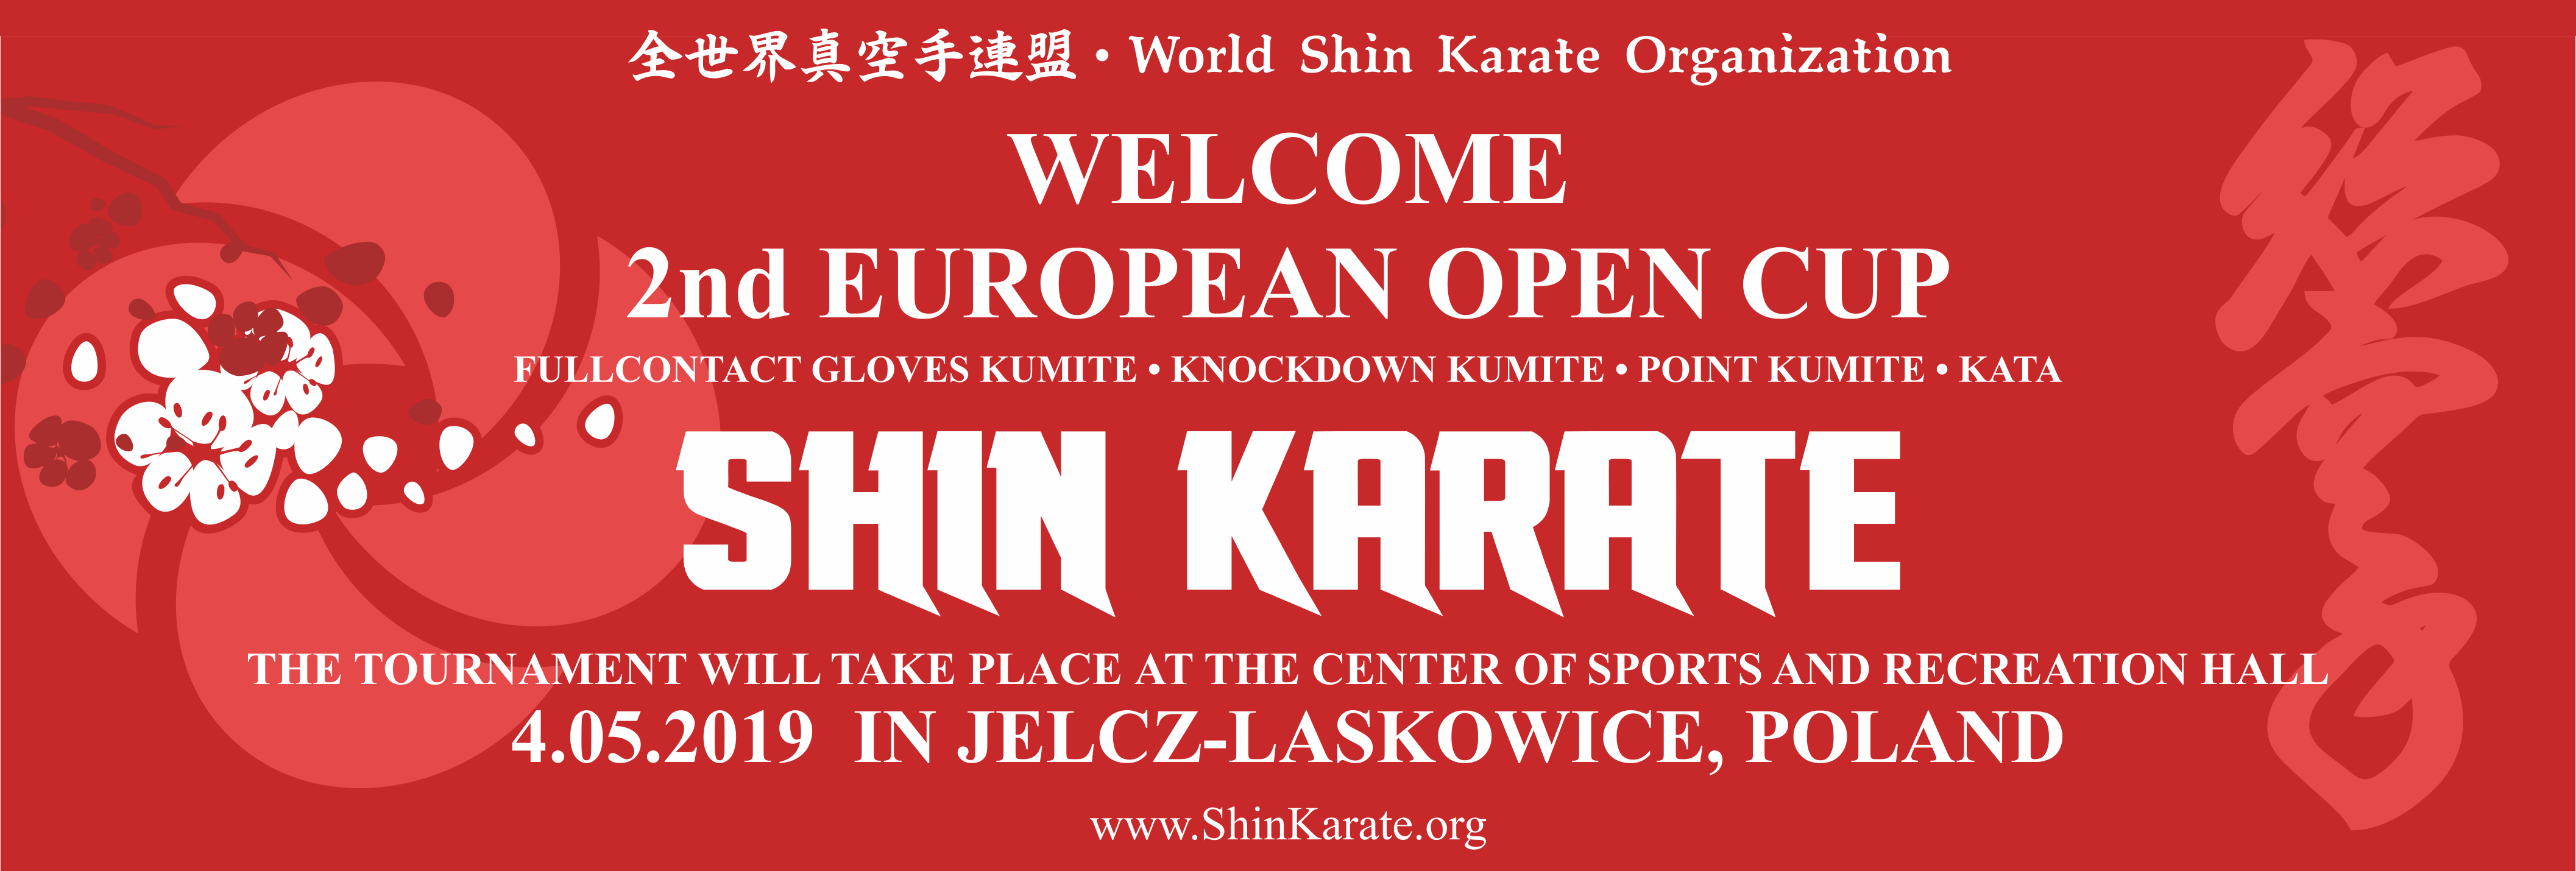 World Shin Karate Organization • Шин Карате • 全世界真空手連盟